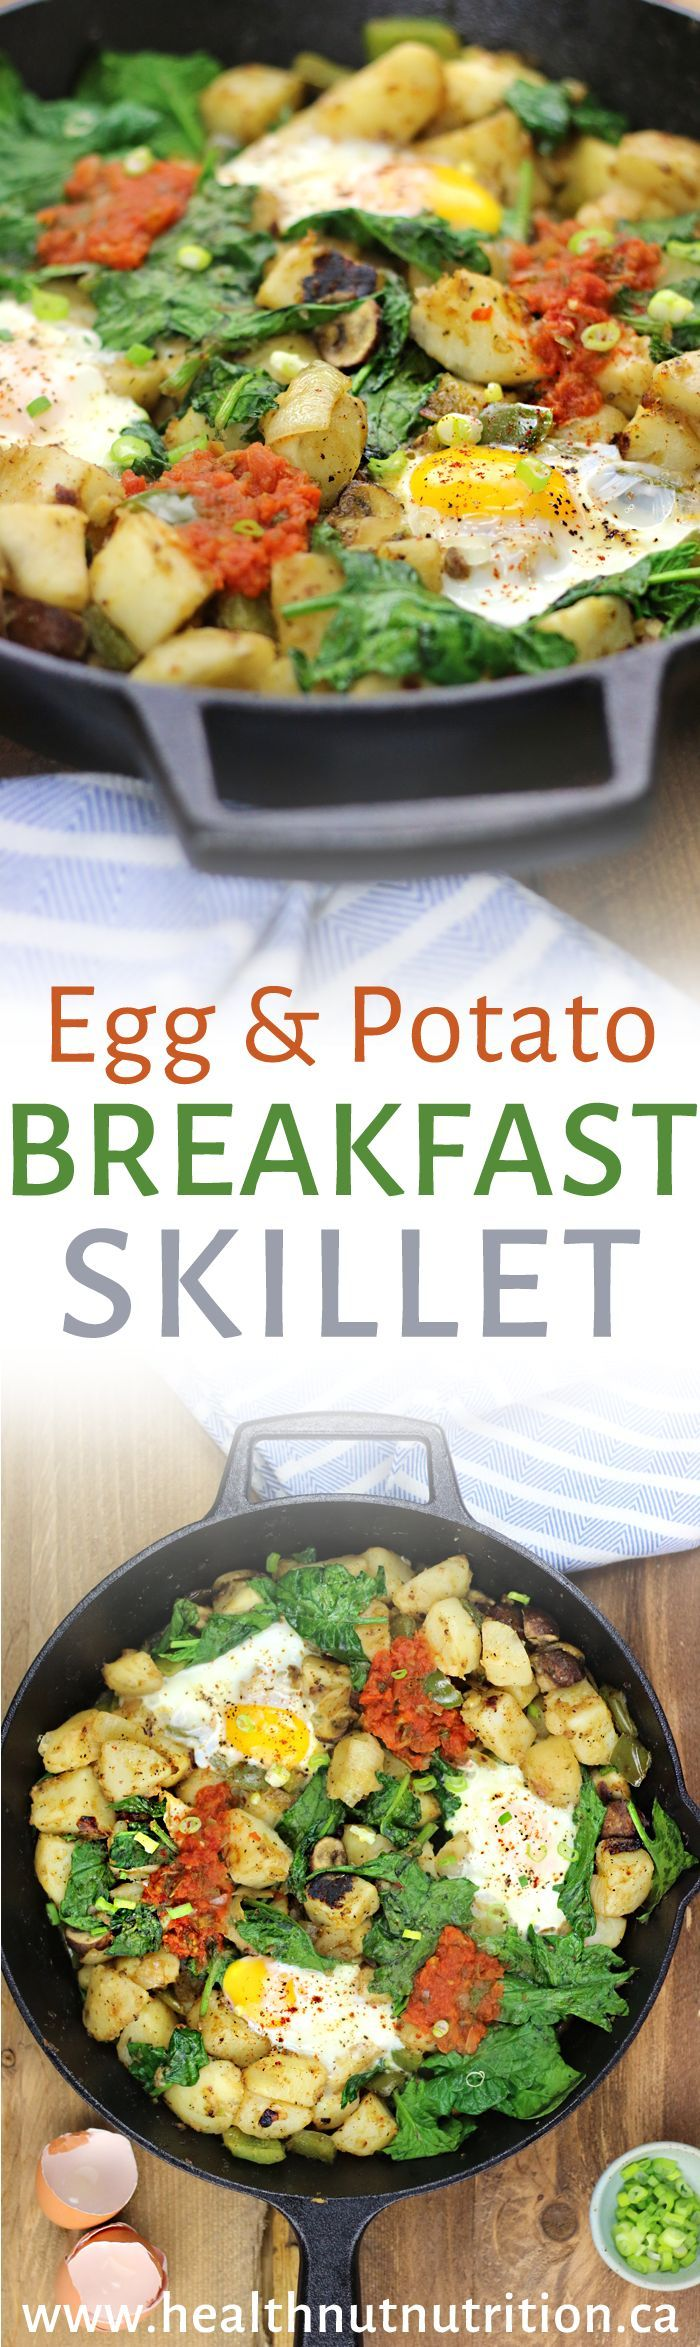 Egg and Potato Breakfast Skillet: Made with crispy potatoes pan fried with peppers, onion, and garlic with sunny side up eggs right on top with salsa and spinach for the ultimate breakfast skillet.